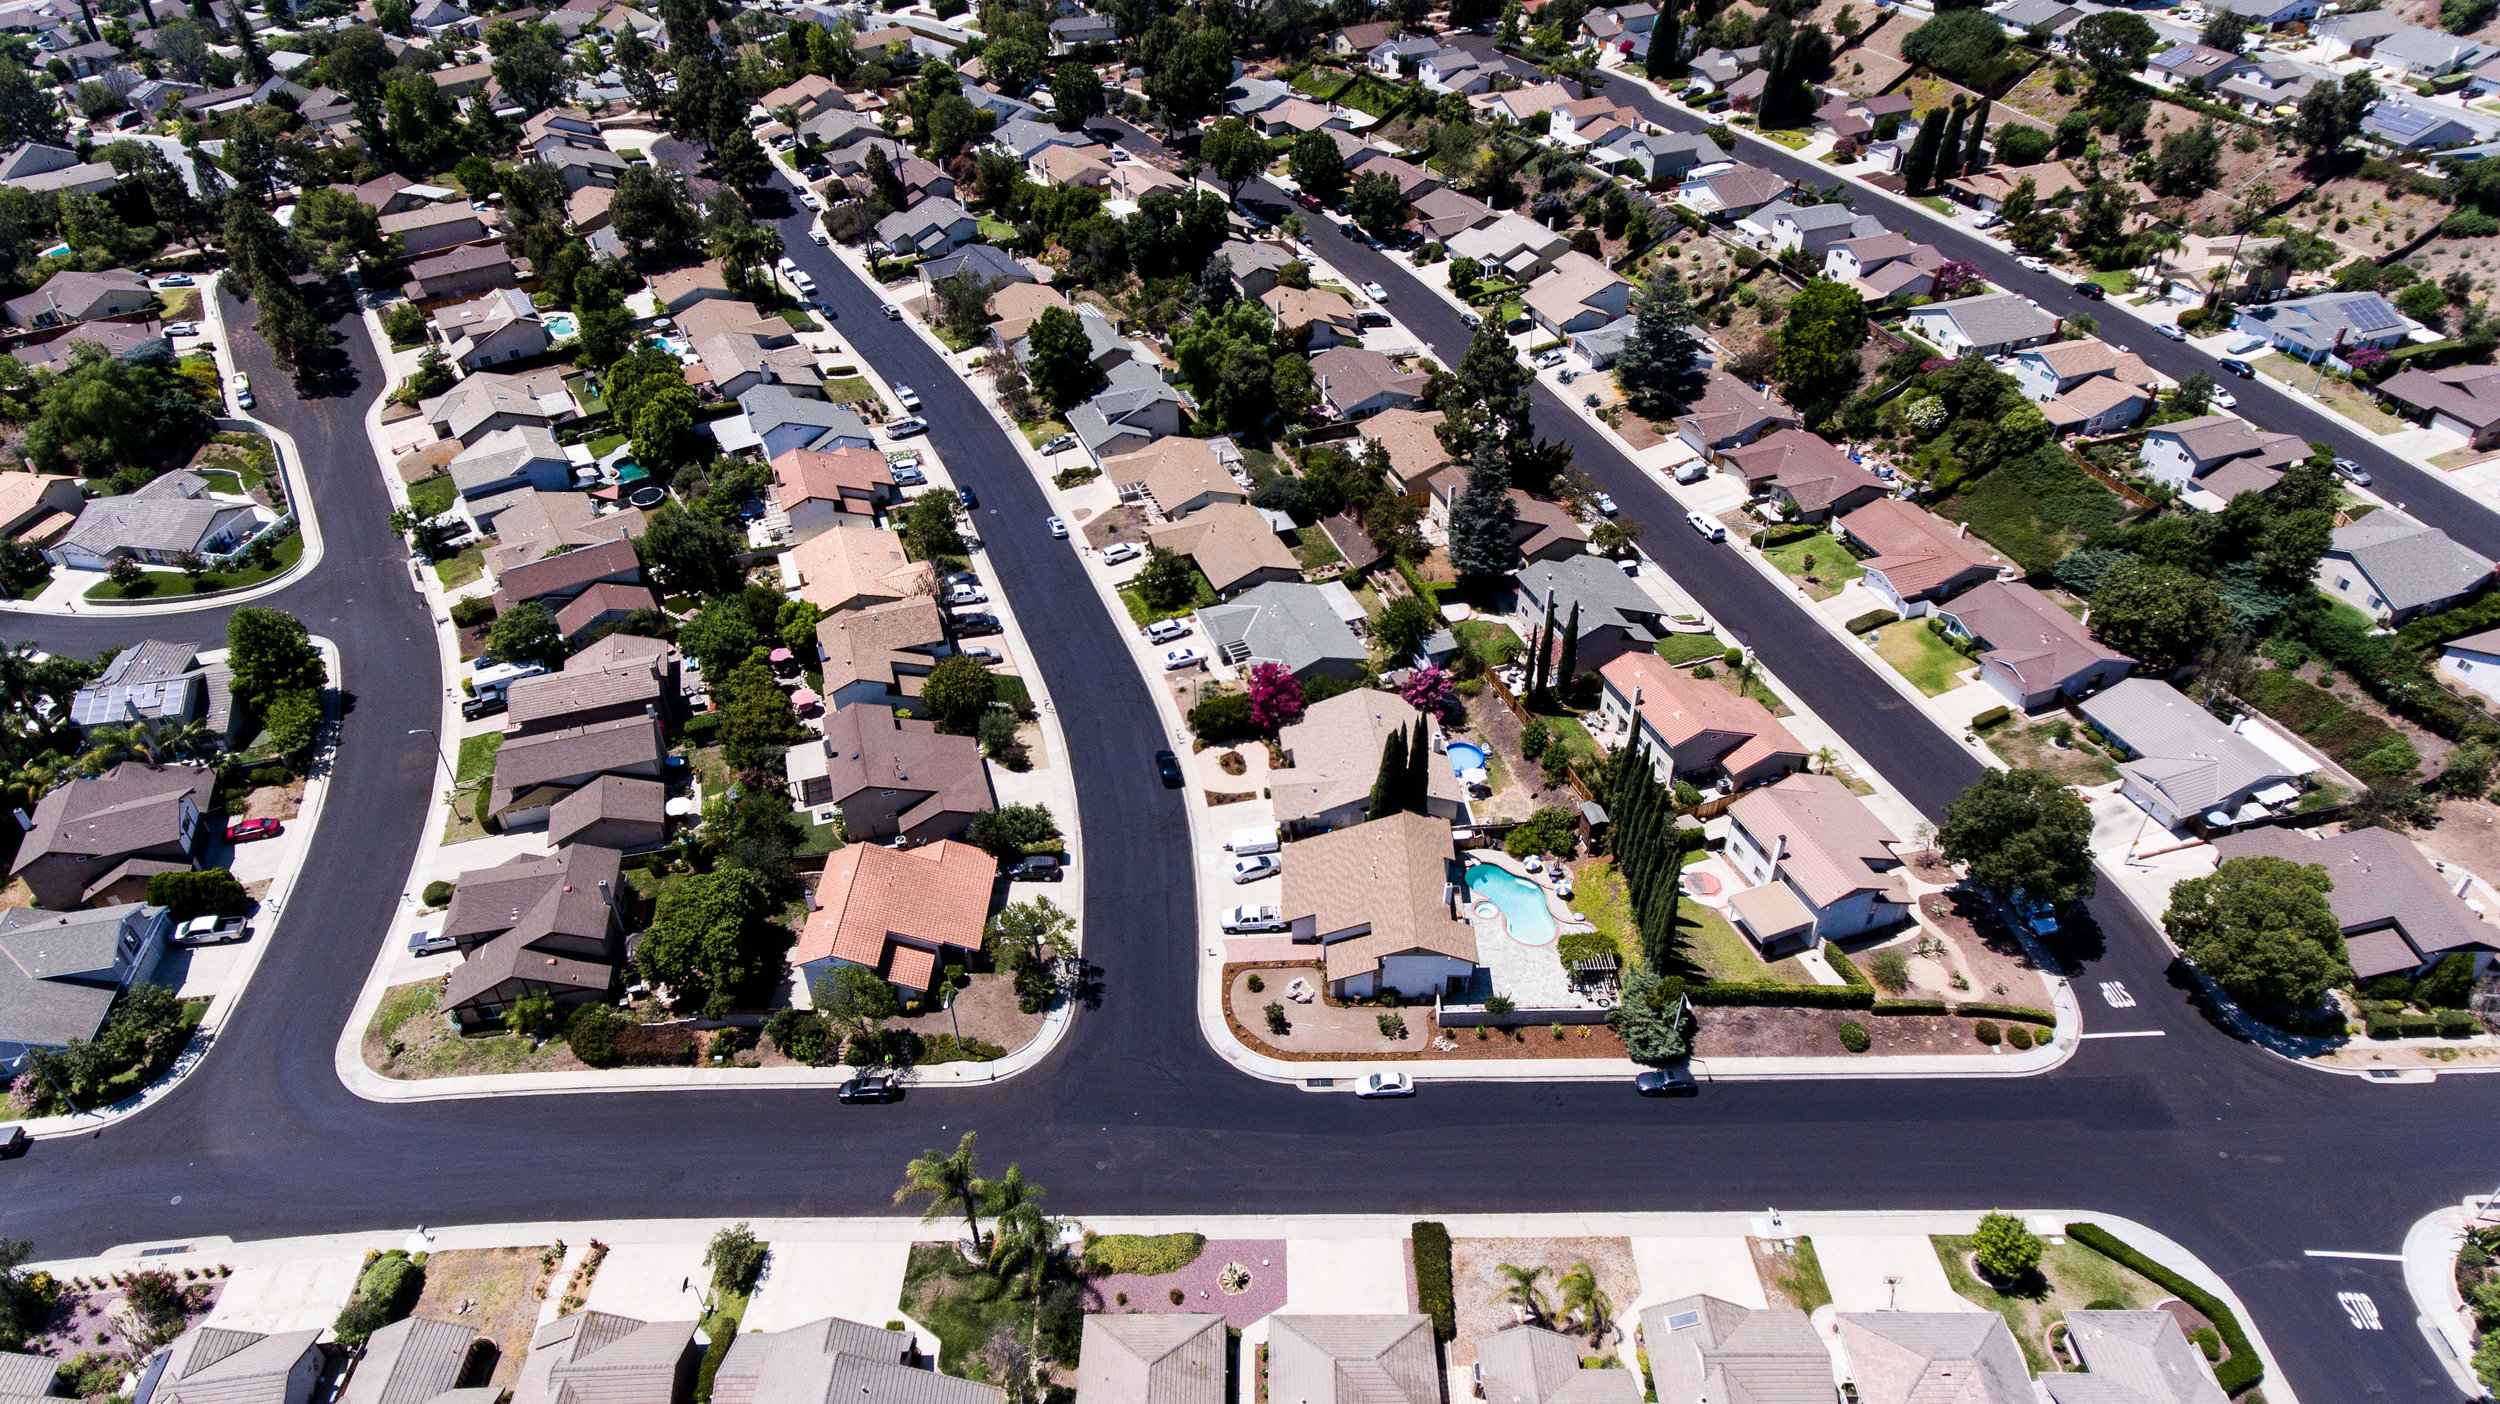 Thousand Oaks Residential Streets with Central Mix REAS (6).JPG